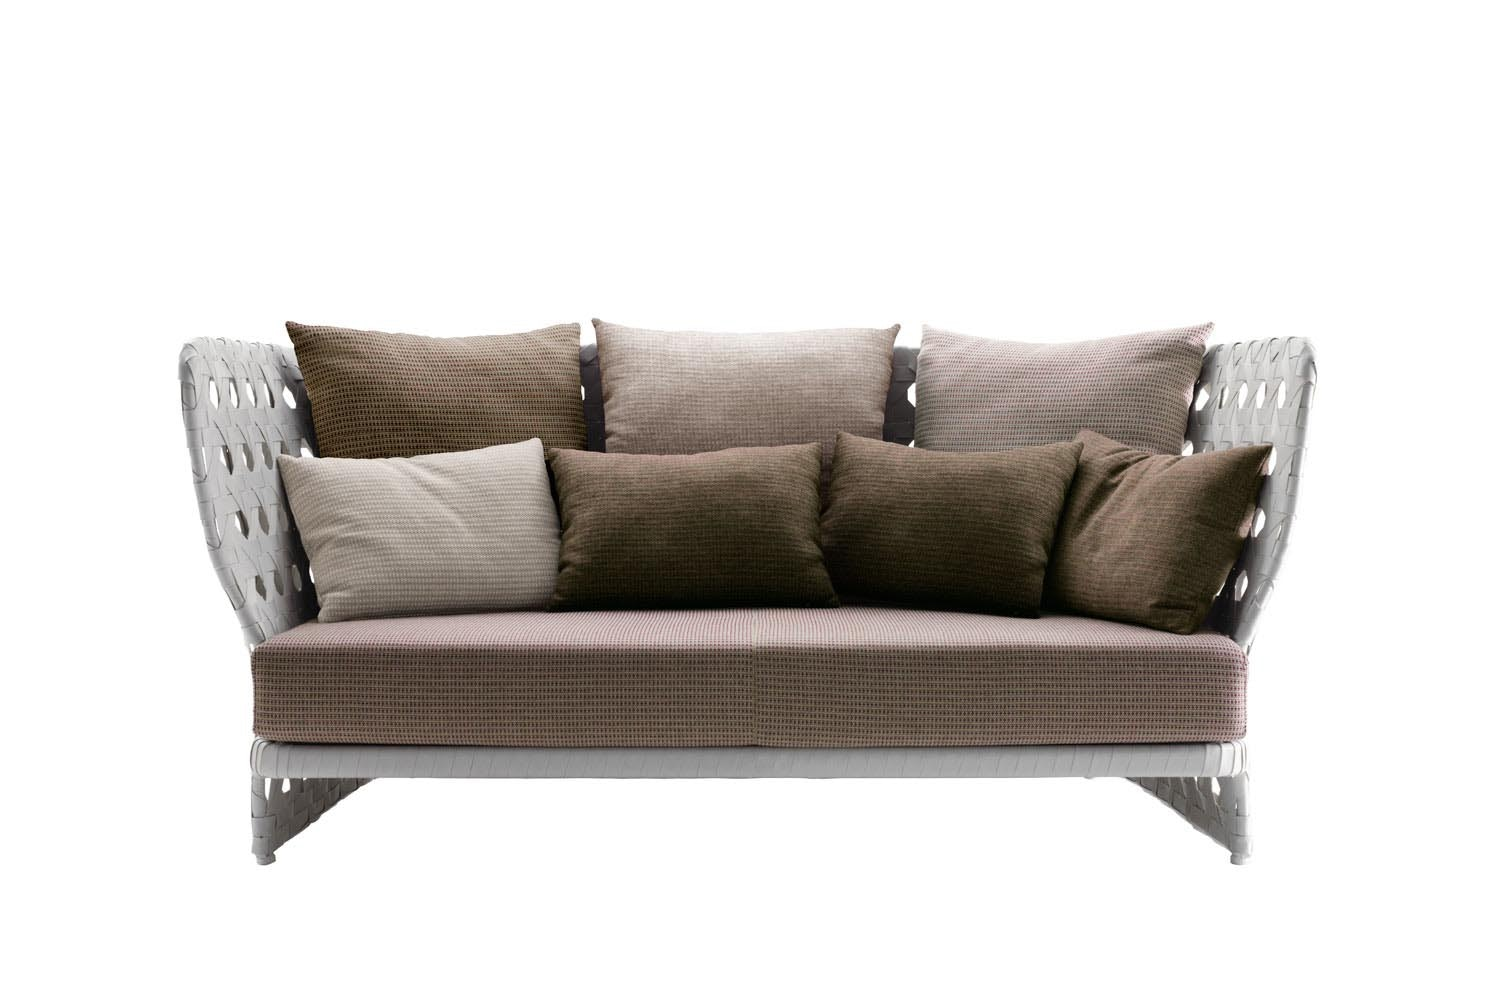 Canasta Sofa by Patricia Urquiola for B&B Italia